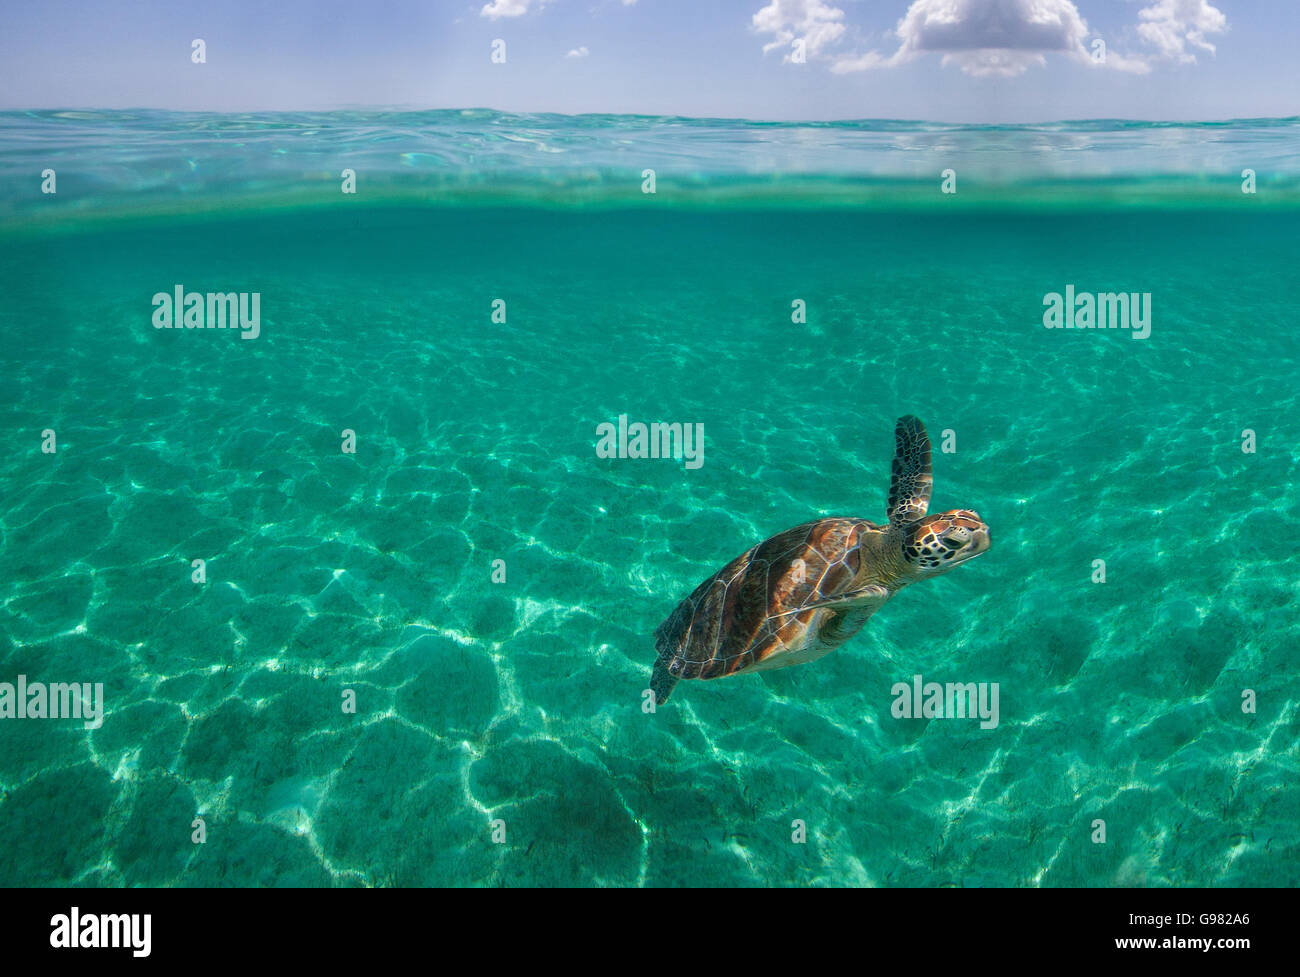 Marine Turtle swiming - Stock Image